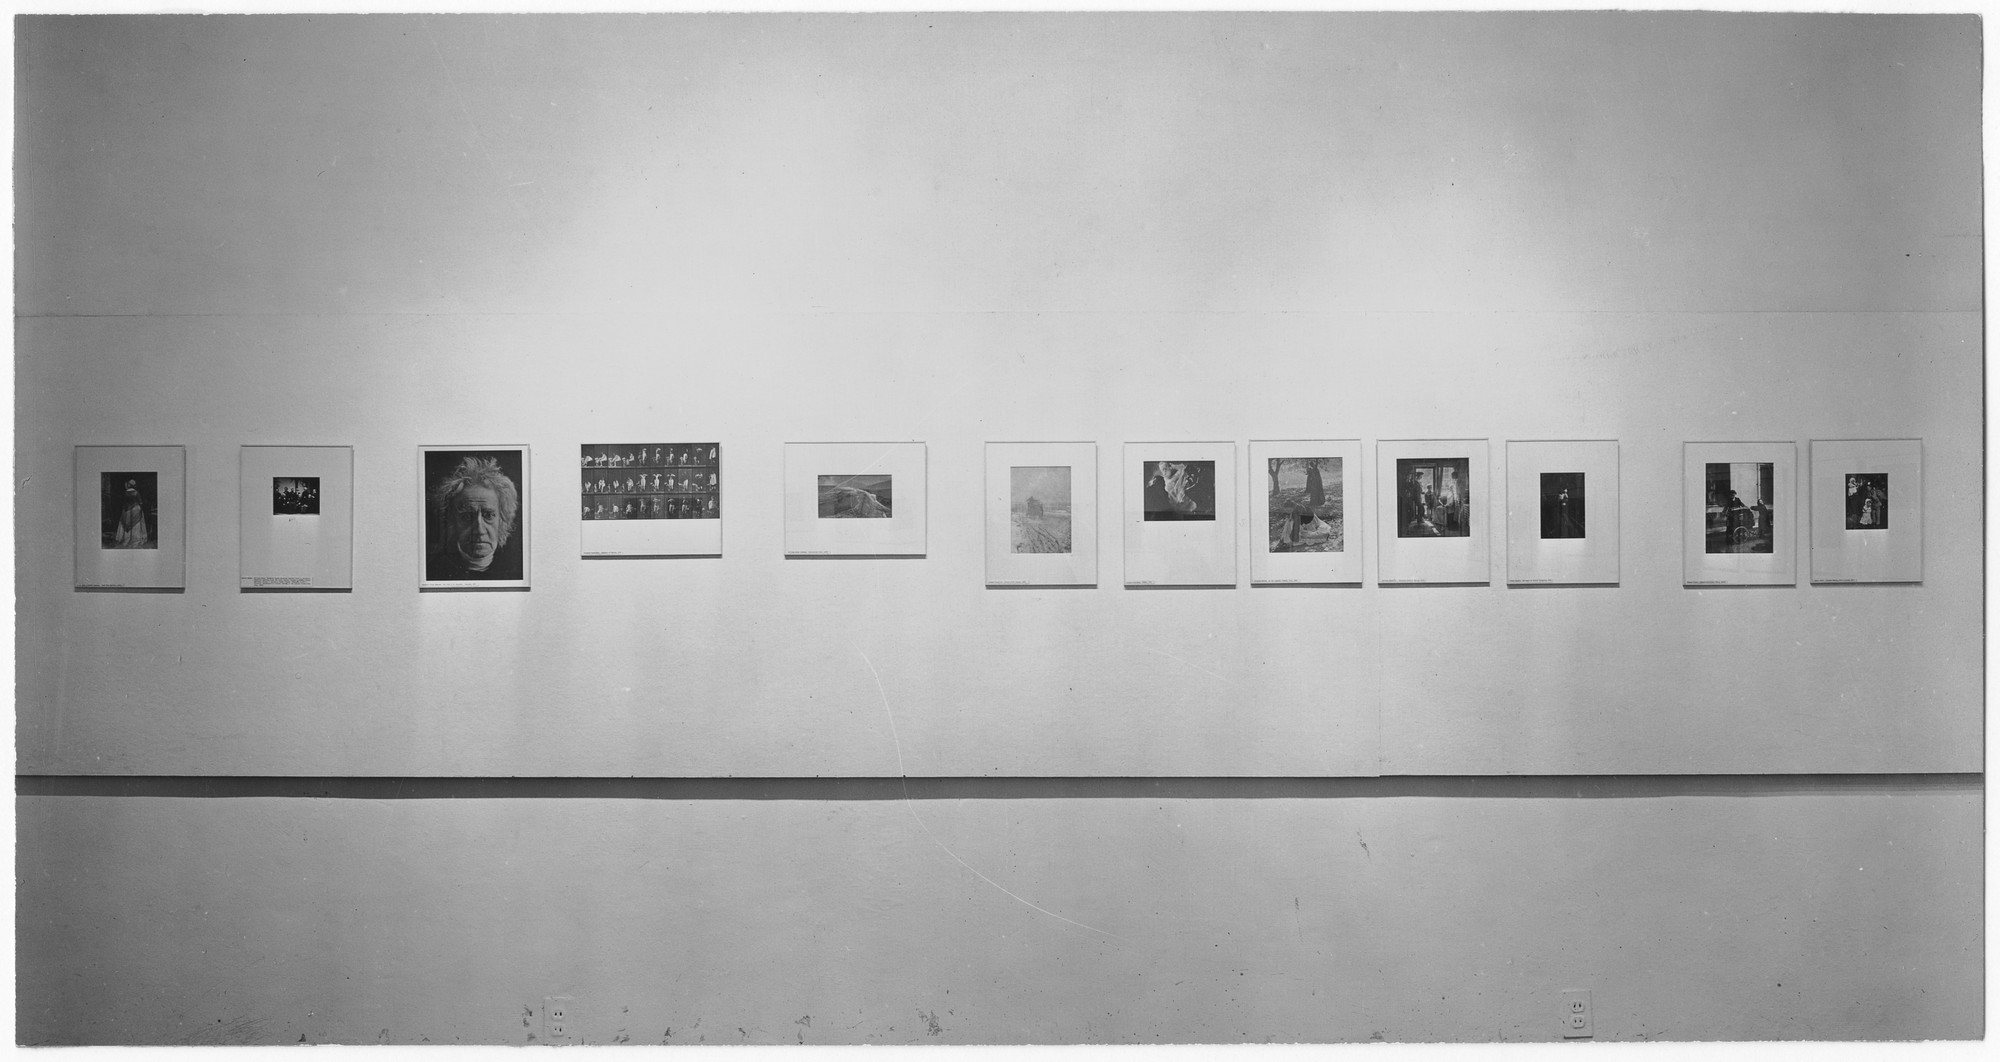 "Installation view of the exhibition, ""50 Photographs by 50 Photographers."" July 27, 1948–September 26, 1948. Photographic Archive. The Museum of Modern Art Archives, New York. IN382.1. Photograph by Soichi Sunami."